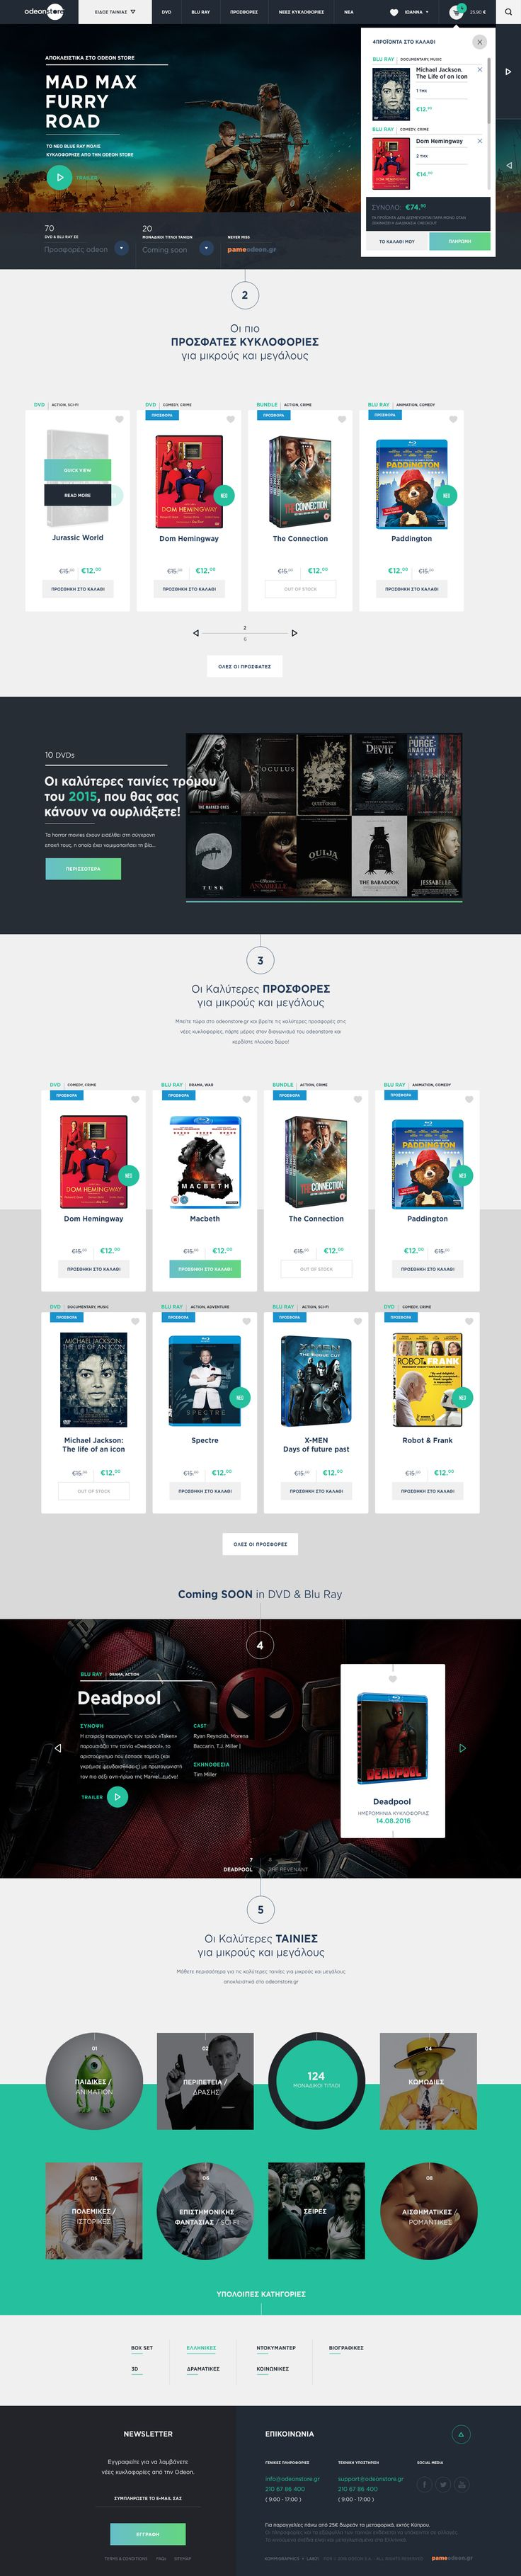 Kommigraphics - Odeon Store Kommigraphics Odeon Strore Ecommerce Eshop Website Design